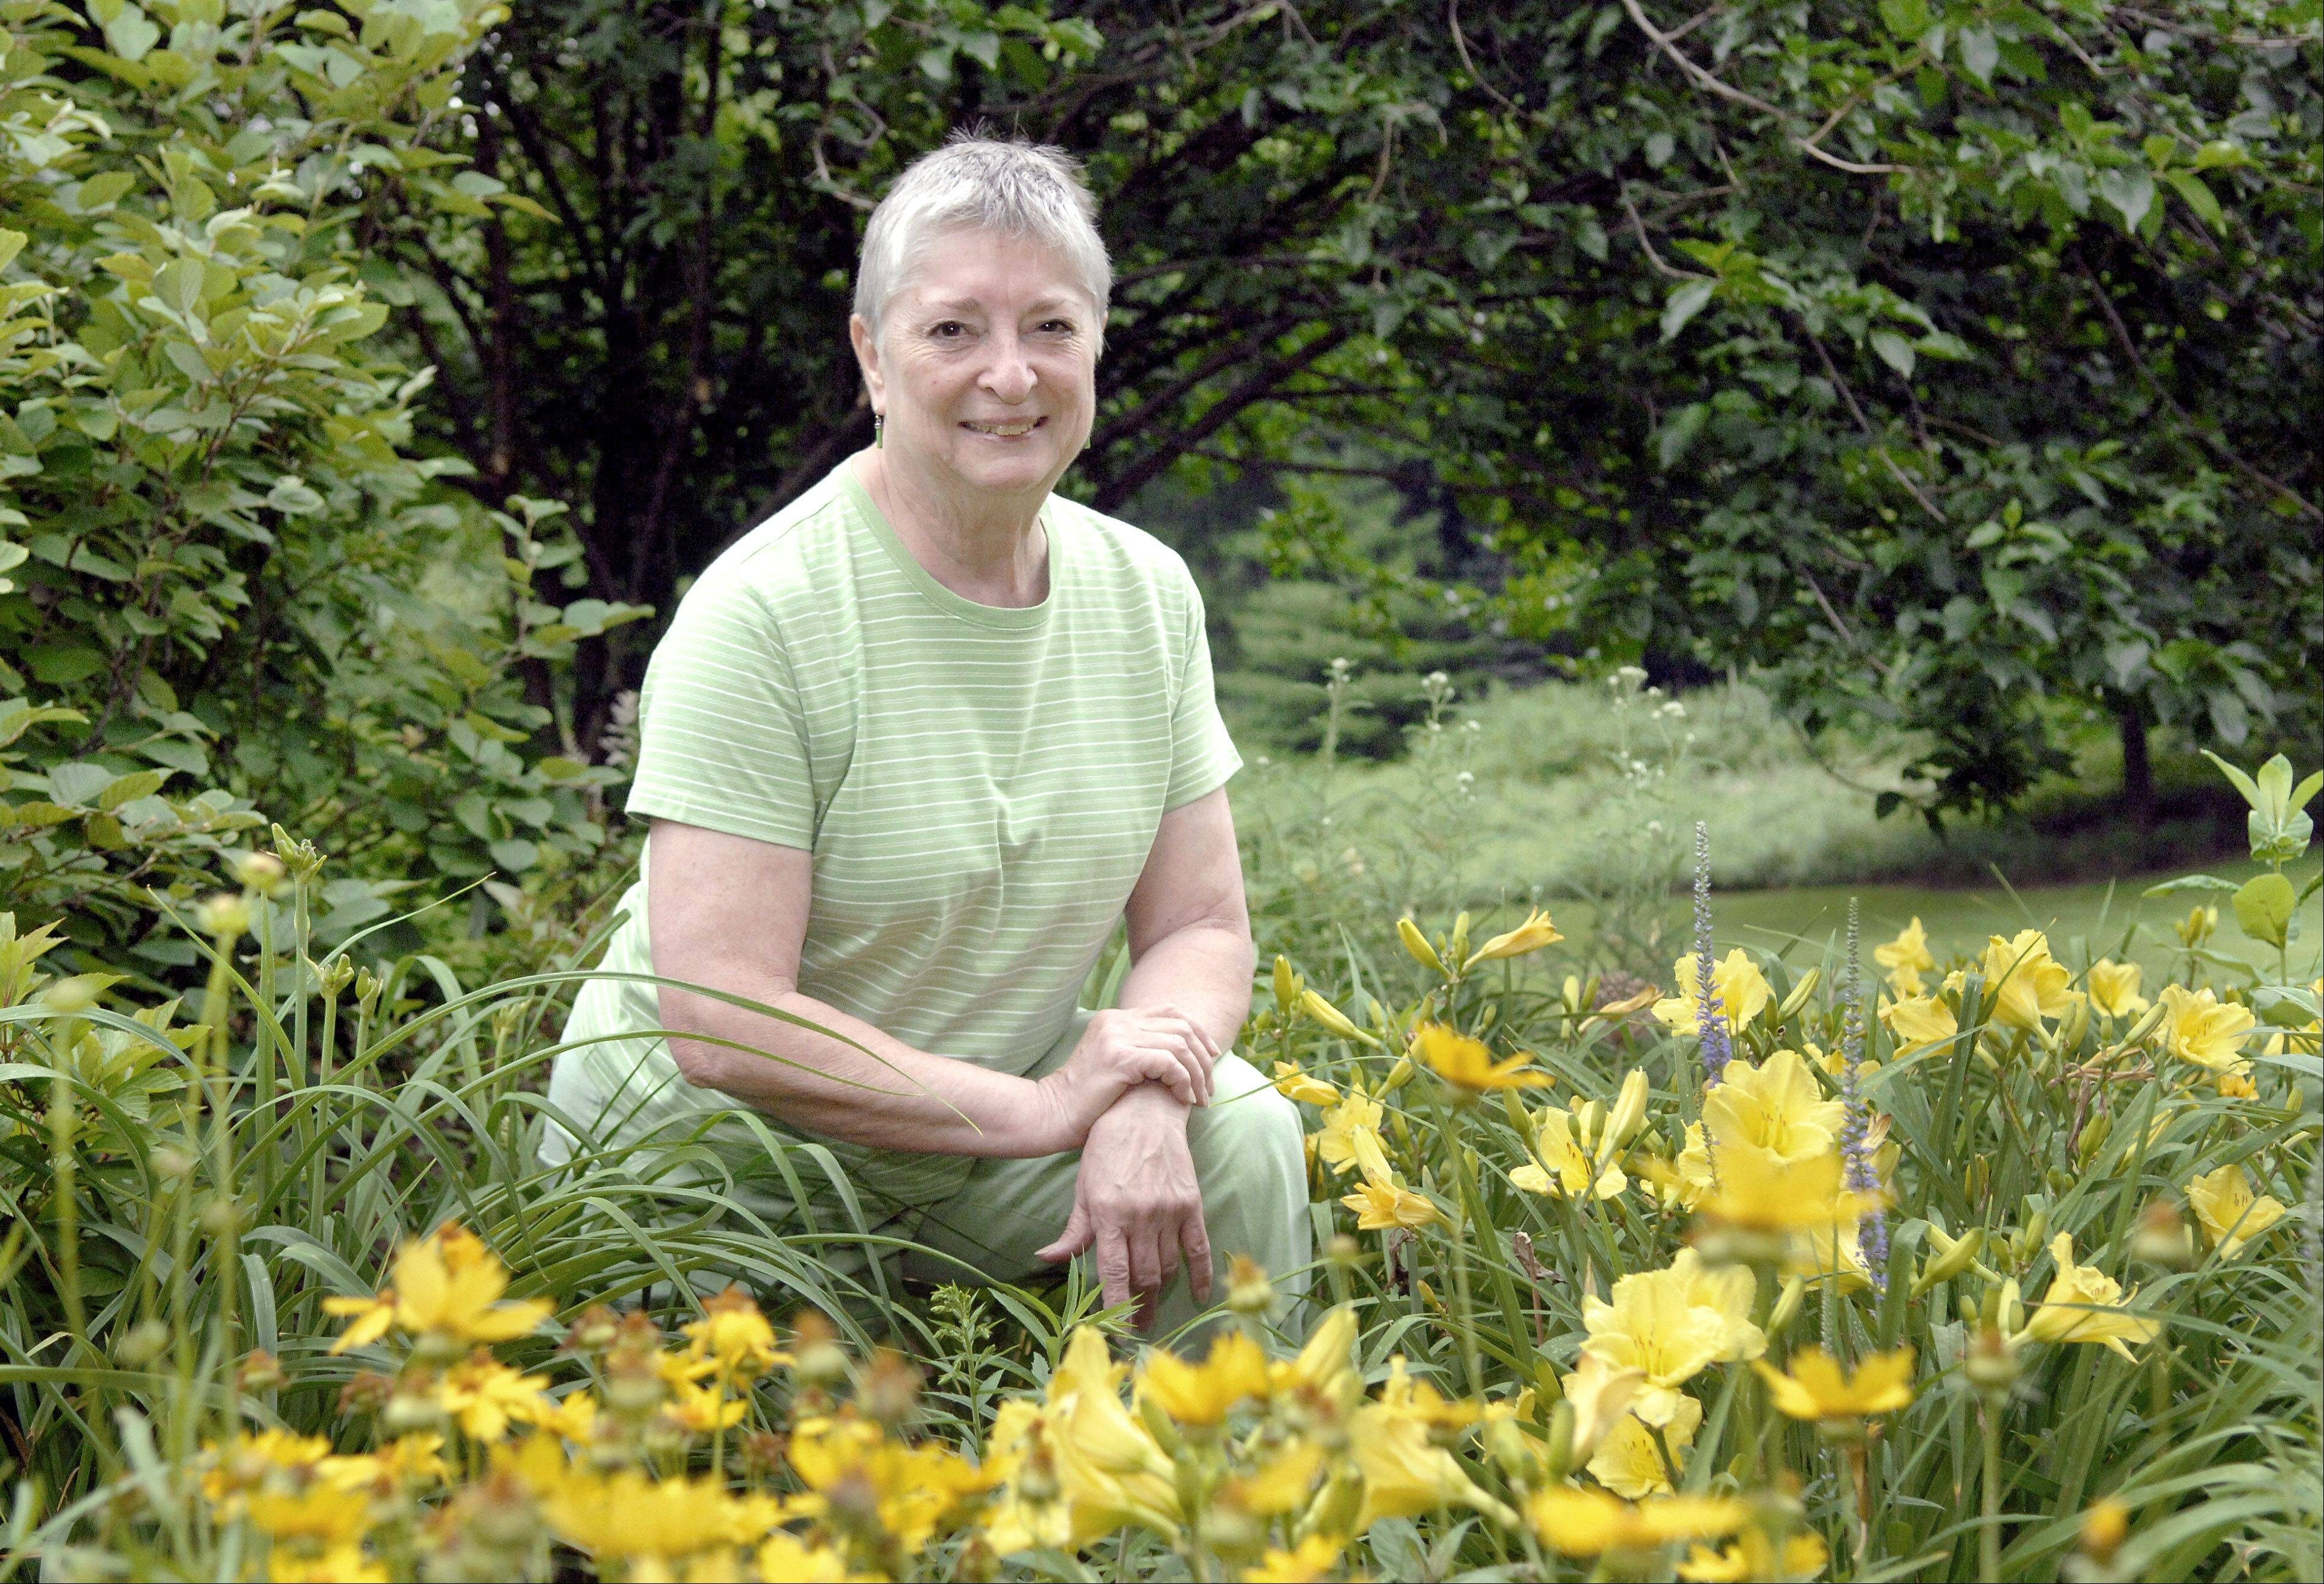 St. Charles master gardener Nancy Cox at her home in St. Charles. Cox says she spends the entire summer in her garden.